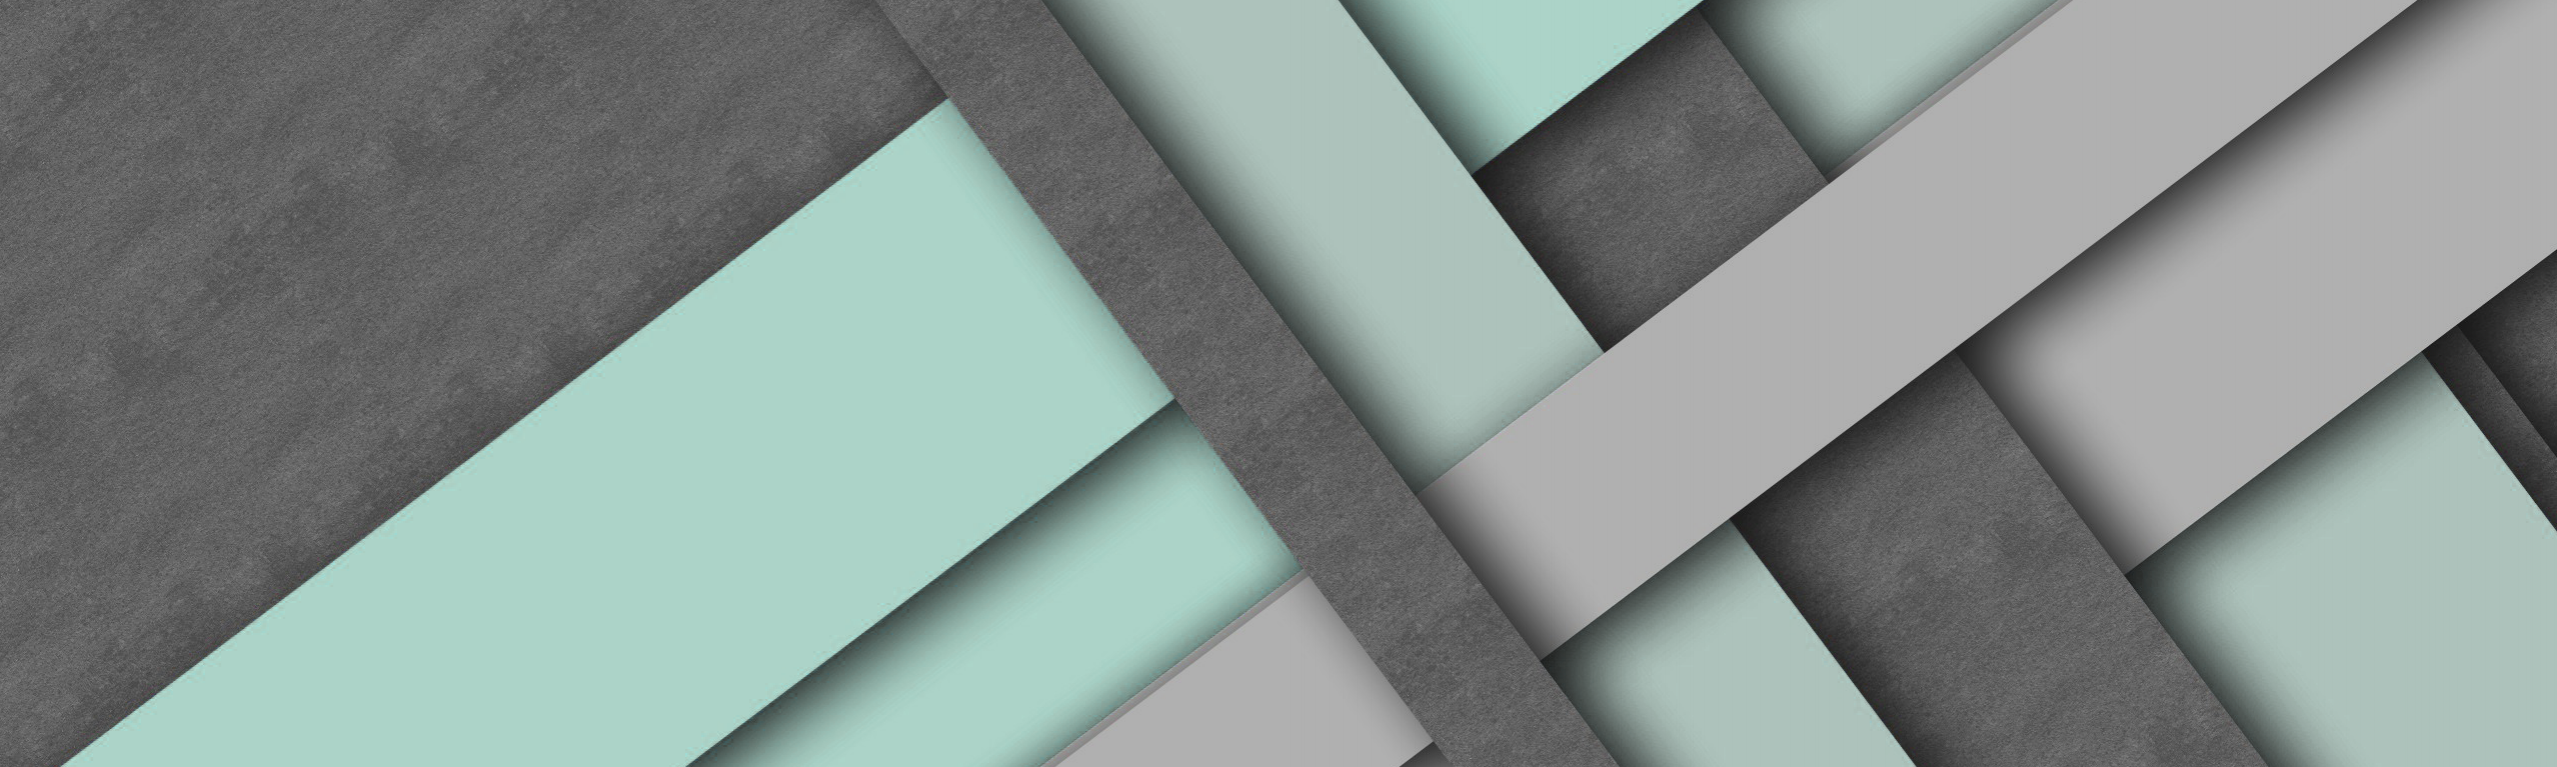 material-design-line-texture-hd-new-2560x1600-224426-edited.png